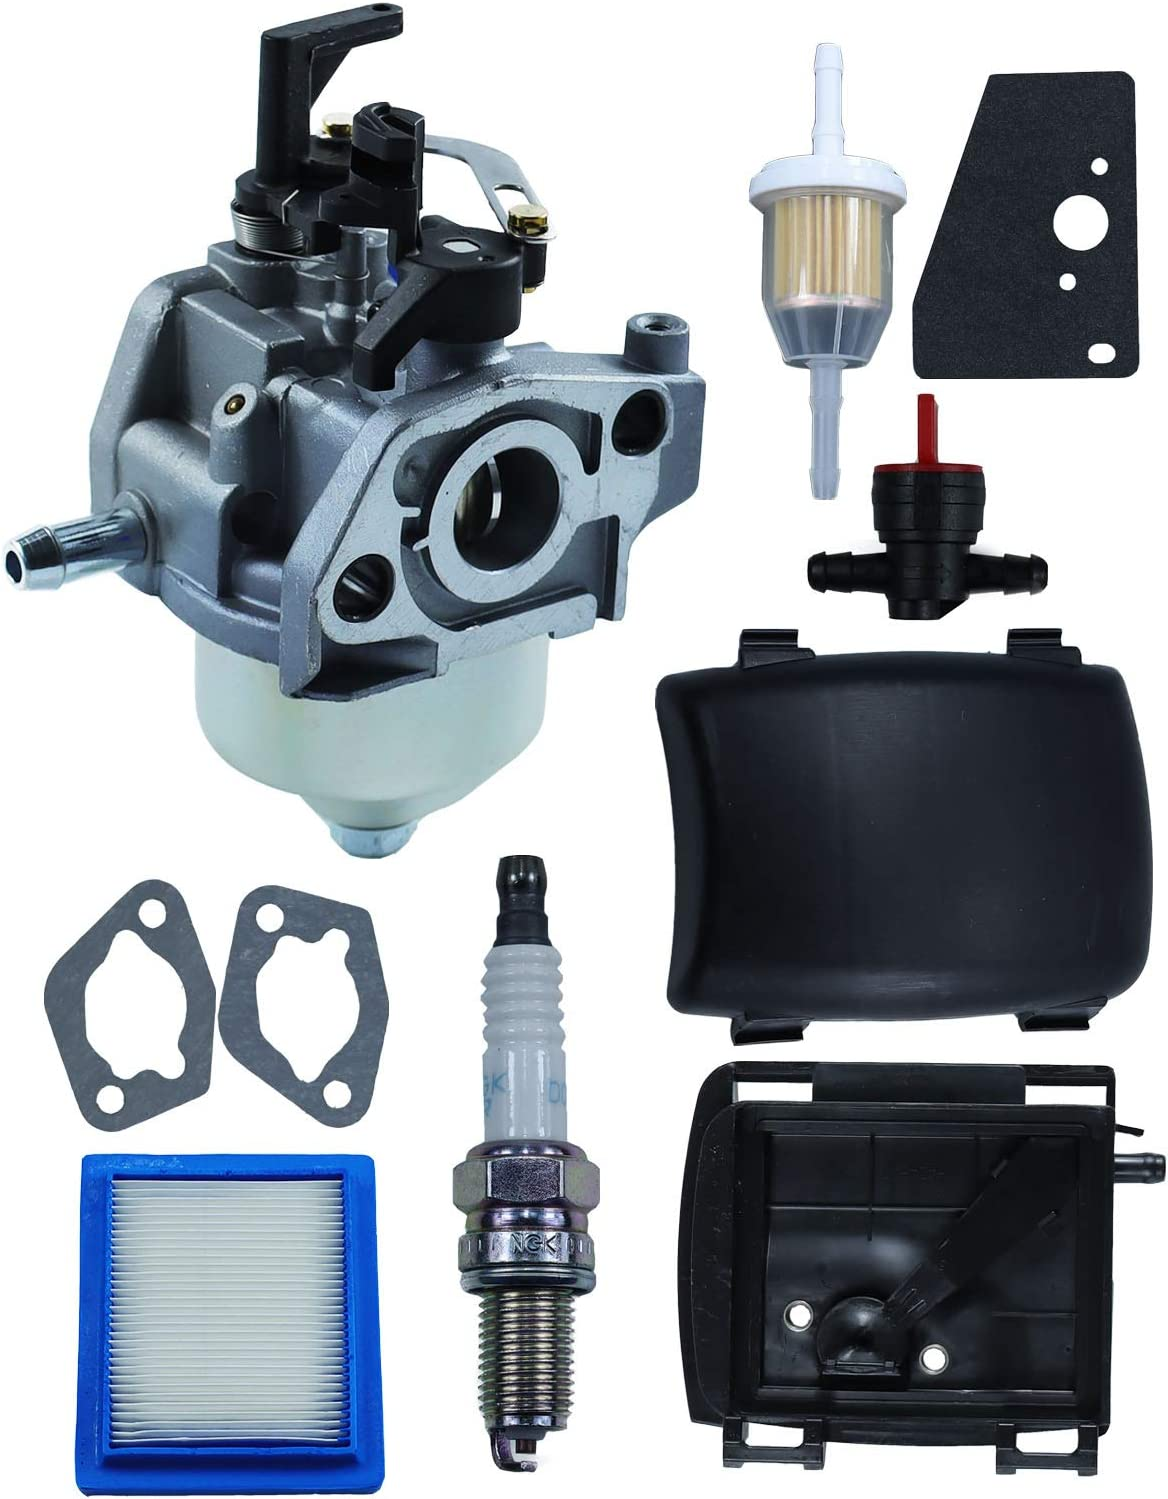 POSEAGLE 14 853 68-S Carburetor Tune-Up Kits with 14-743-03-S Air Cleaner Cover & Base for XT650 XT675 Toro Husqvarna MTD Engine Replaces 14 853 55-S for Engine